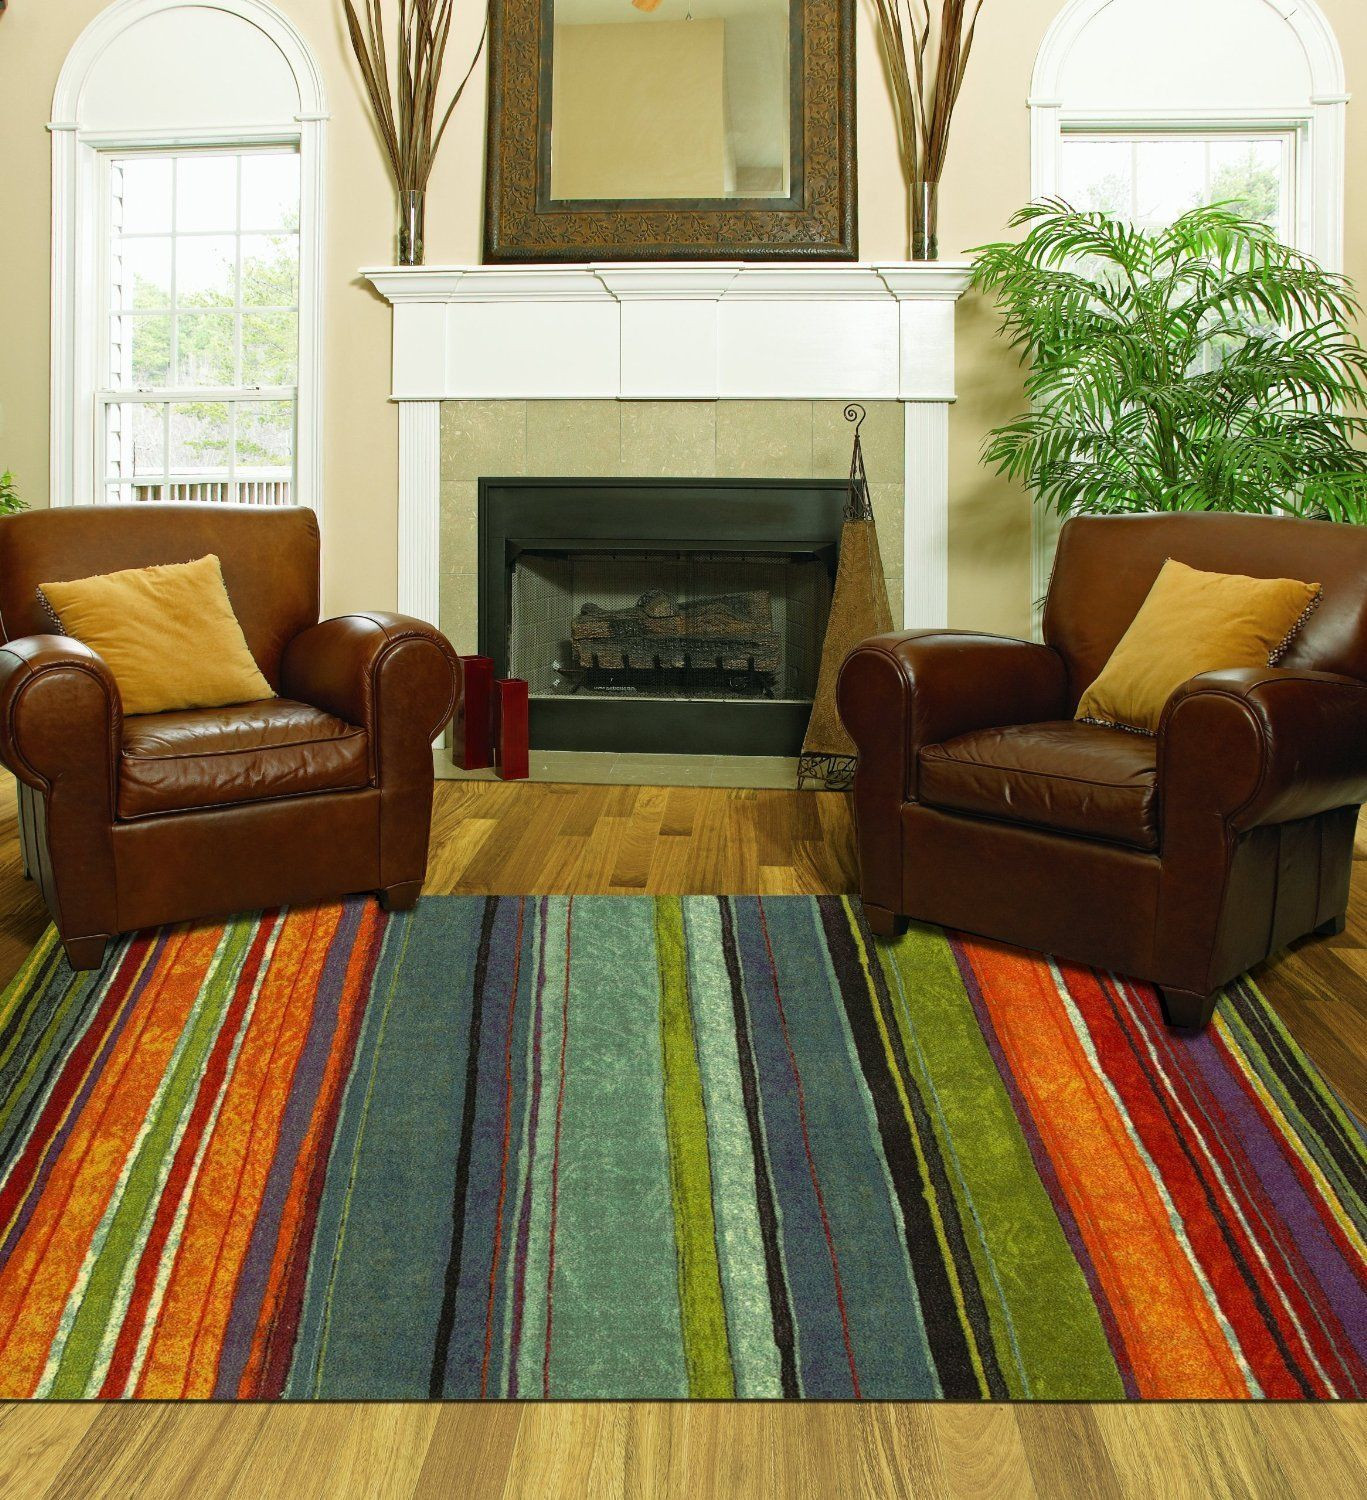 Best ideas about Family Room Rugs . Save or Pin Area Rug Colorful 8x10 Living Room Size Carpet Home Now.